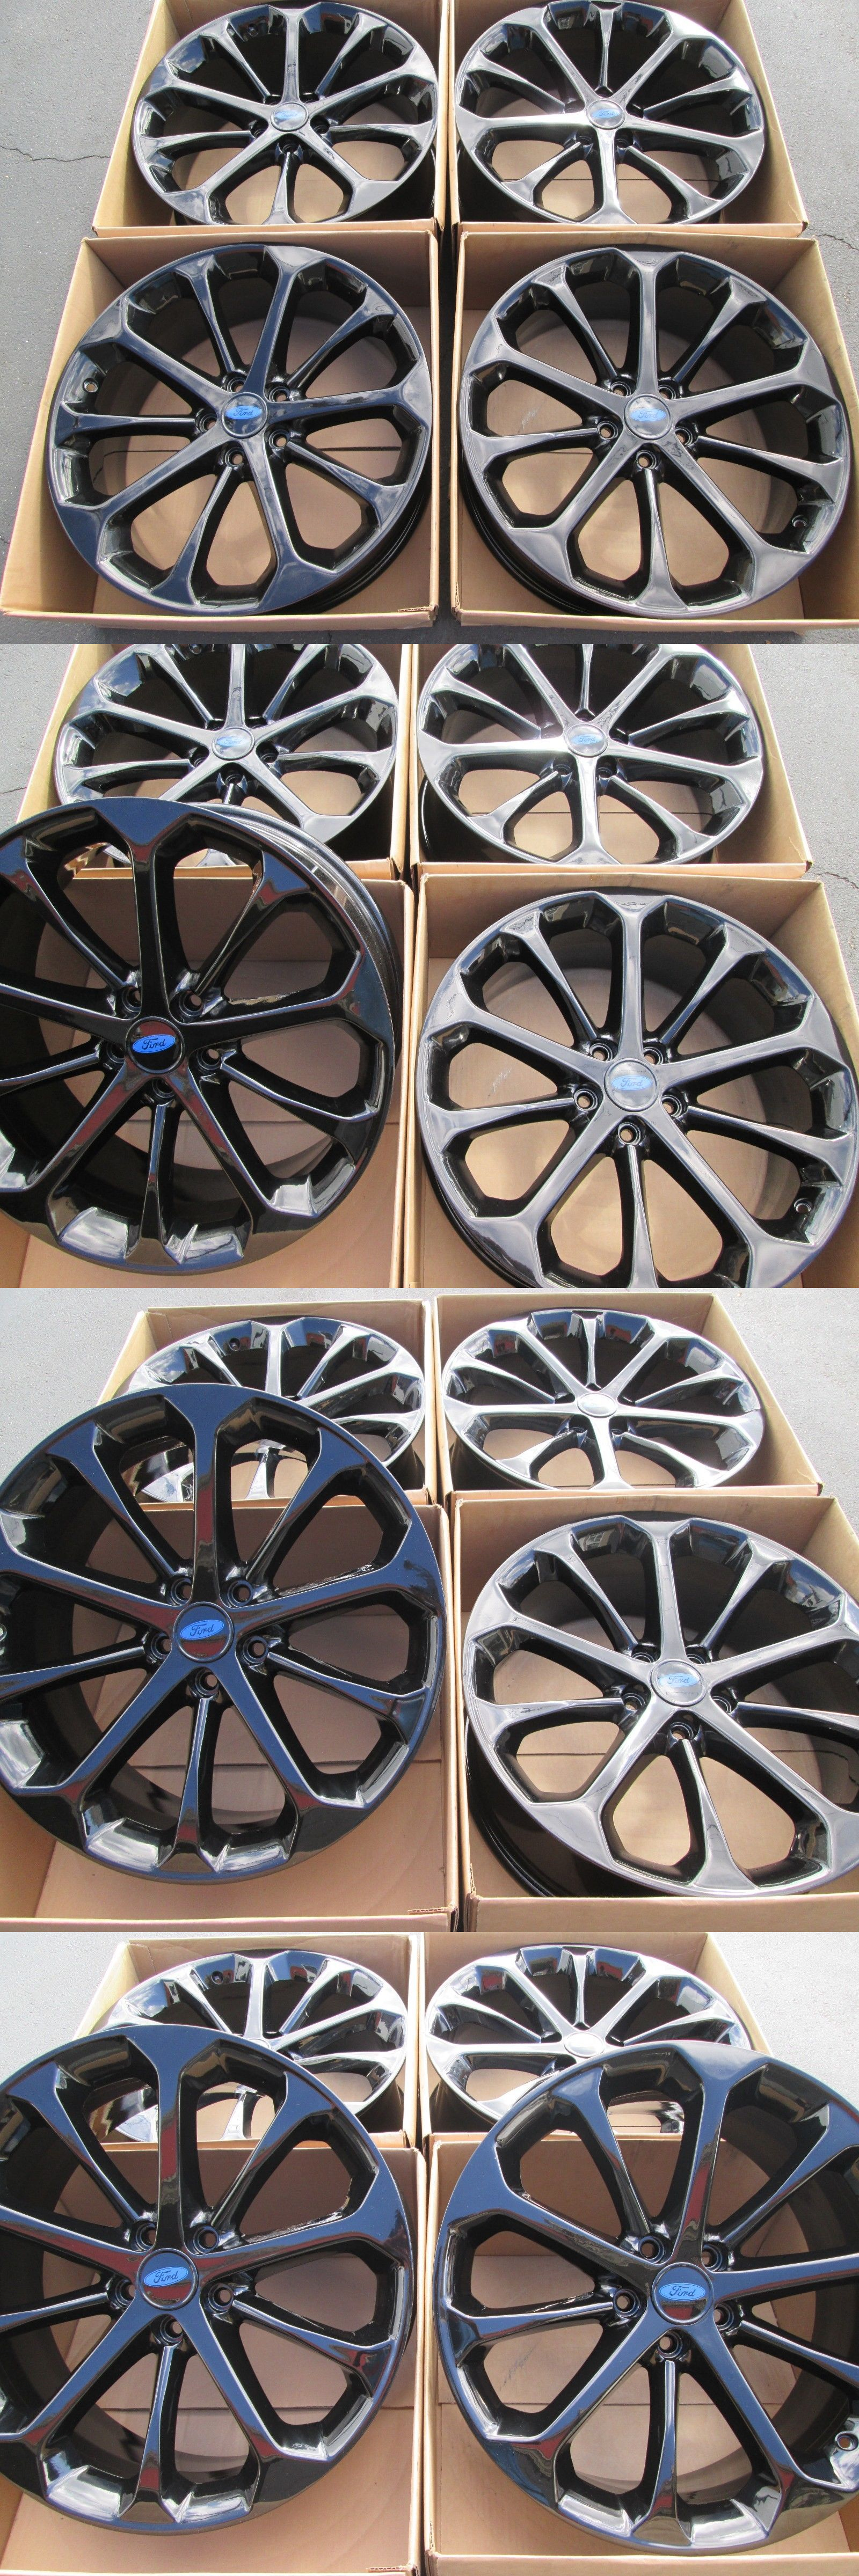 auto parts - general: 20 Ford Taurus Factory Oem Wheels Rims New Gloss Black Powder Coated Set 4 -> BUY IT NOW ONLY: $1009 on eBay!